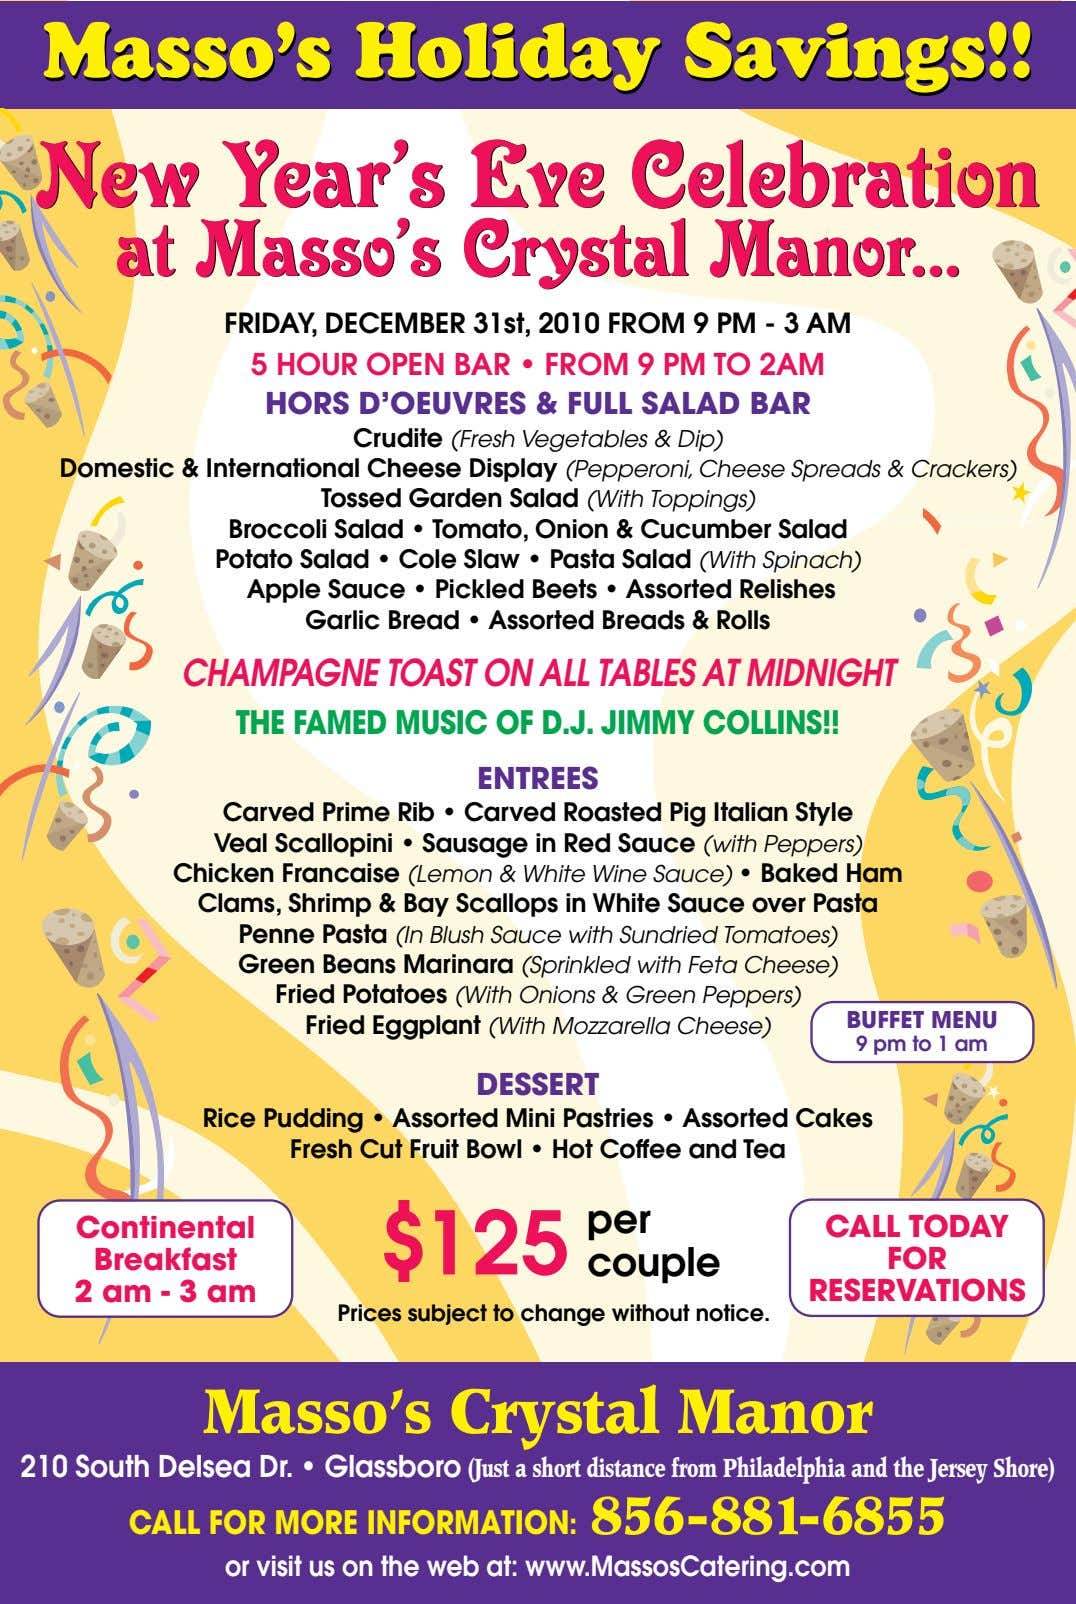 Masso's Masso's Holiday Holiday Savings!! Savings!! New Year's Eve Celebration New Year's Eve Celebration at Masso's